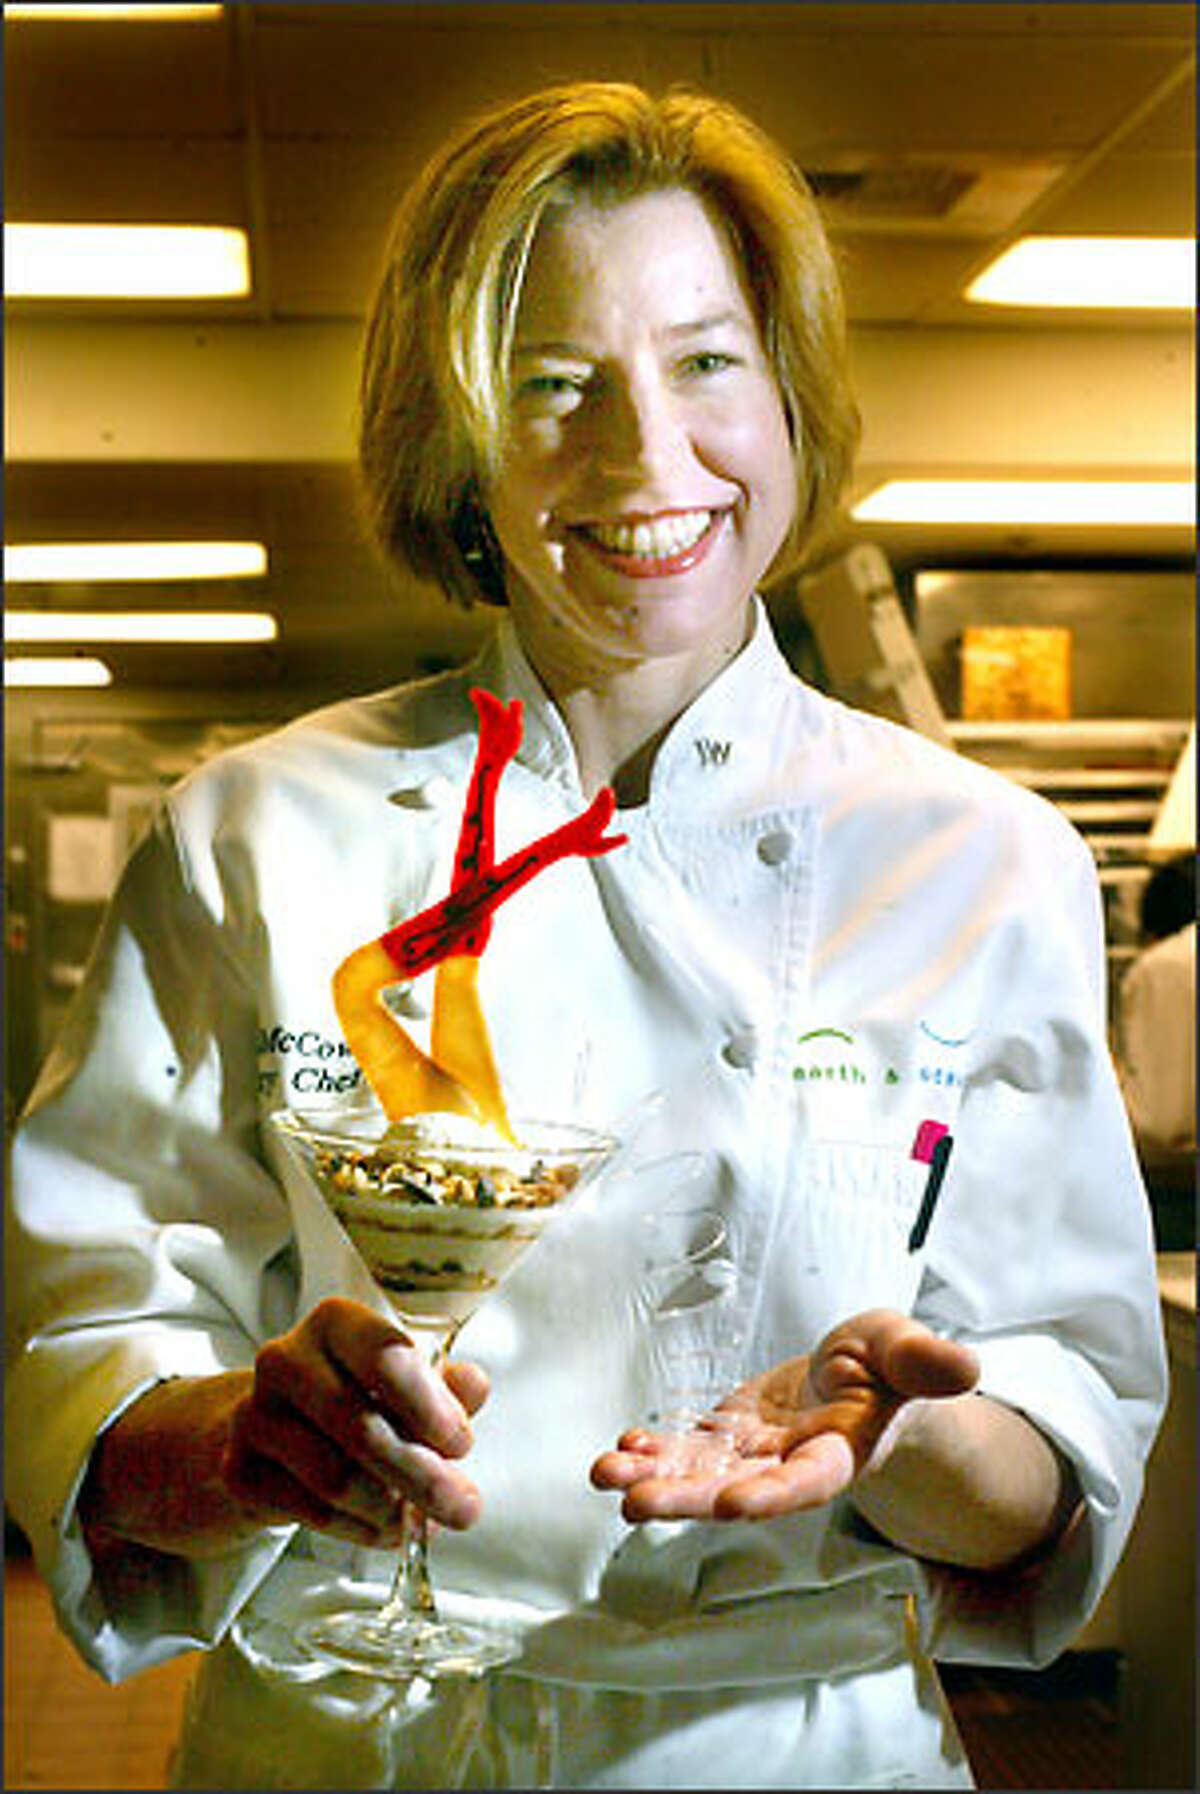 Earth & Ocean executive pastry chef Sue McCown's distinctive desserts promise to satisfy any sweet tooth in an unforgettable way.